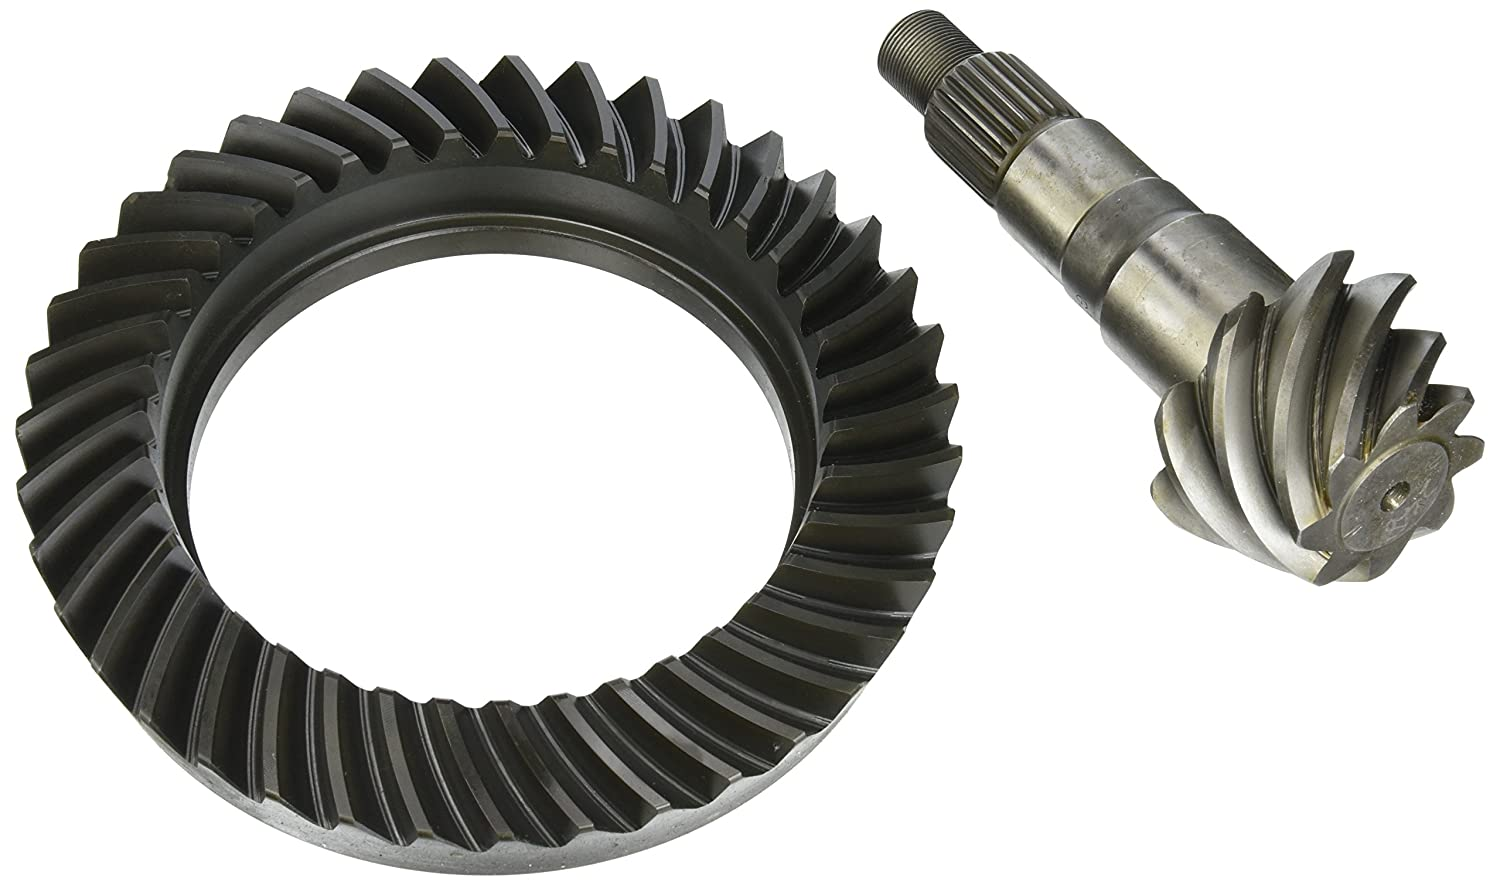 G2 Axle & Gear 2-2051-488R G-2 Performance Ring and Pinion Set